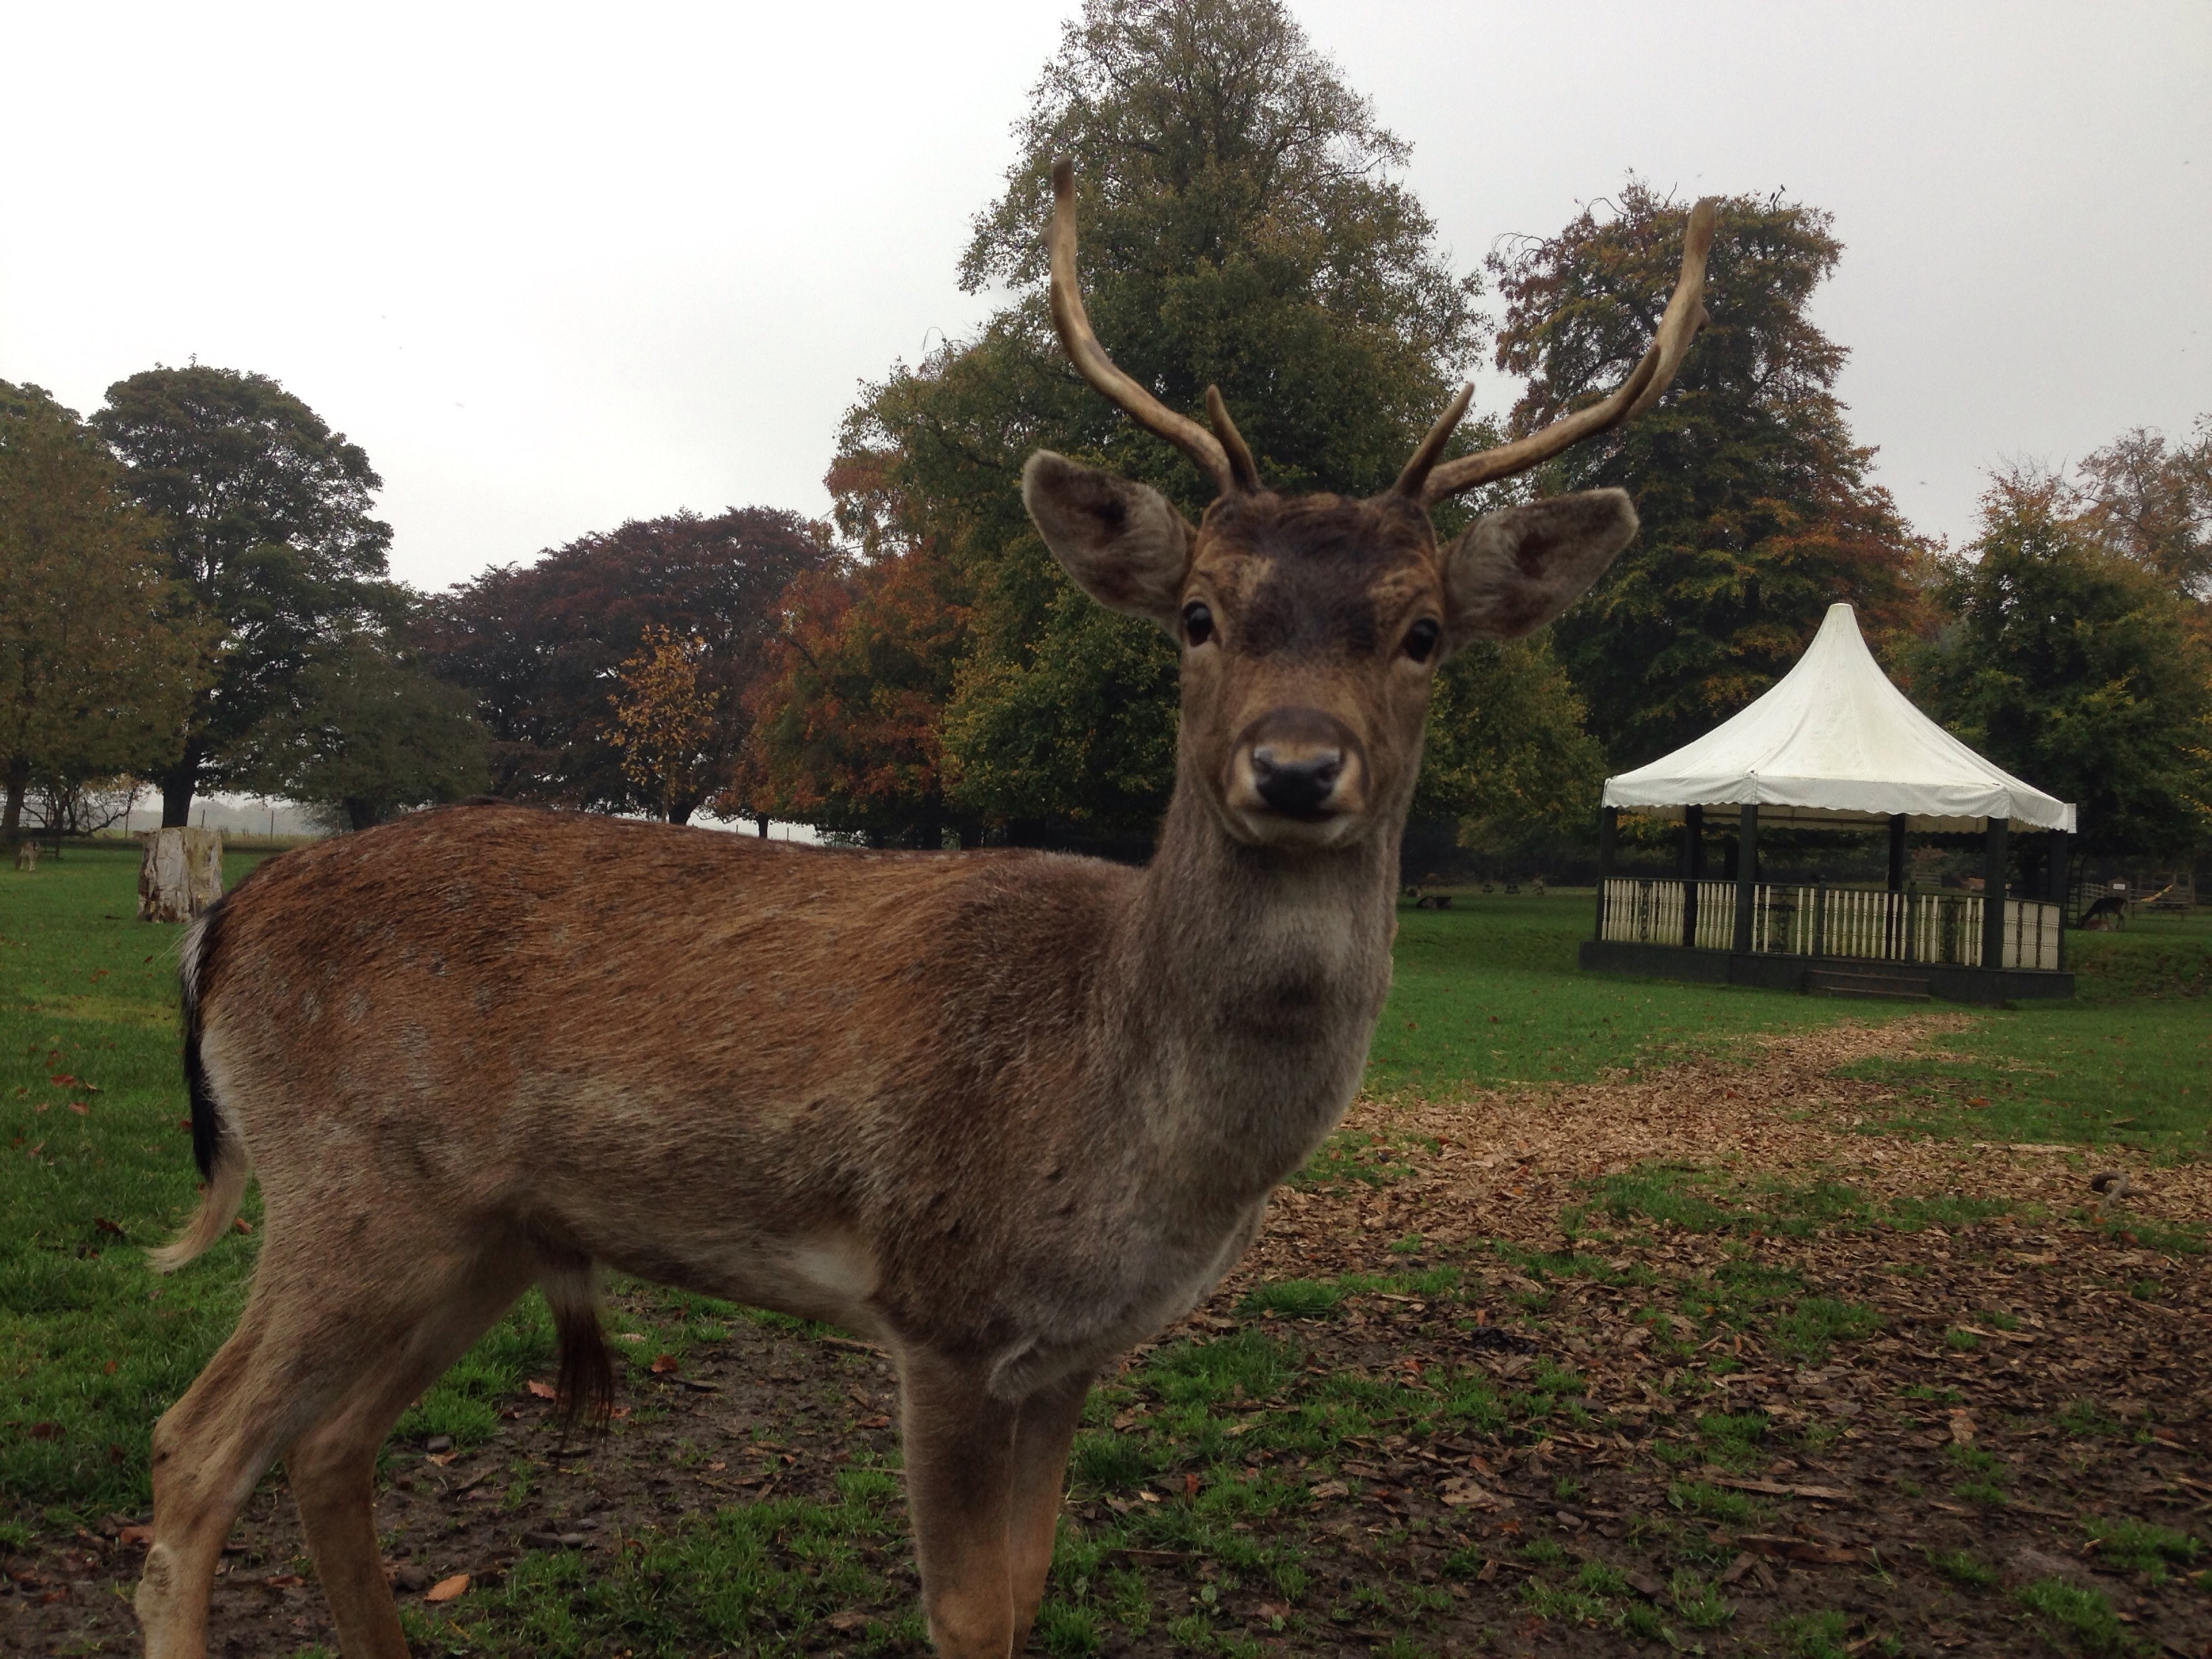 young male deer at whitworth hall country park